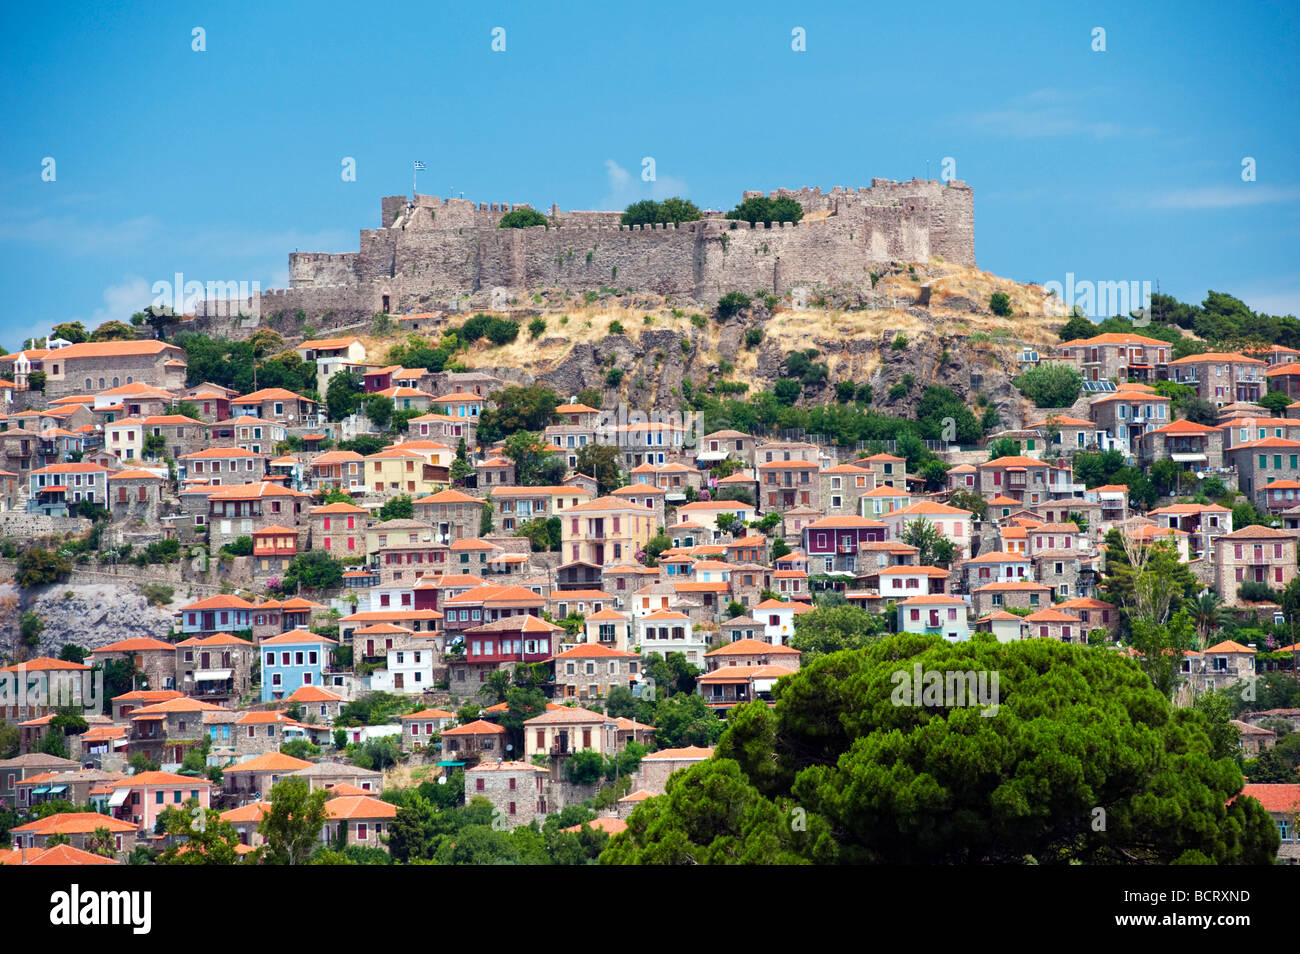 View of town of Molyvos or Mithymna with historic castle on hill on Lesvos Island in Greece - Stock Image